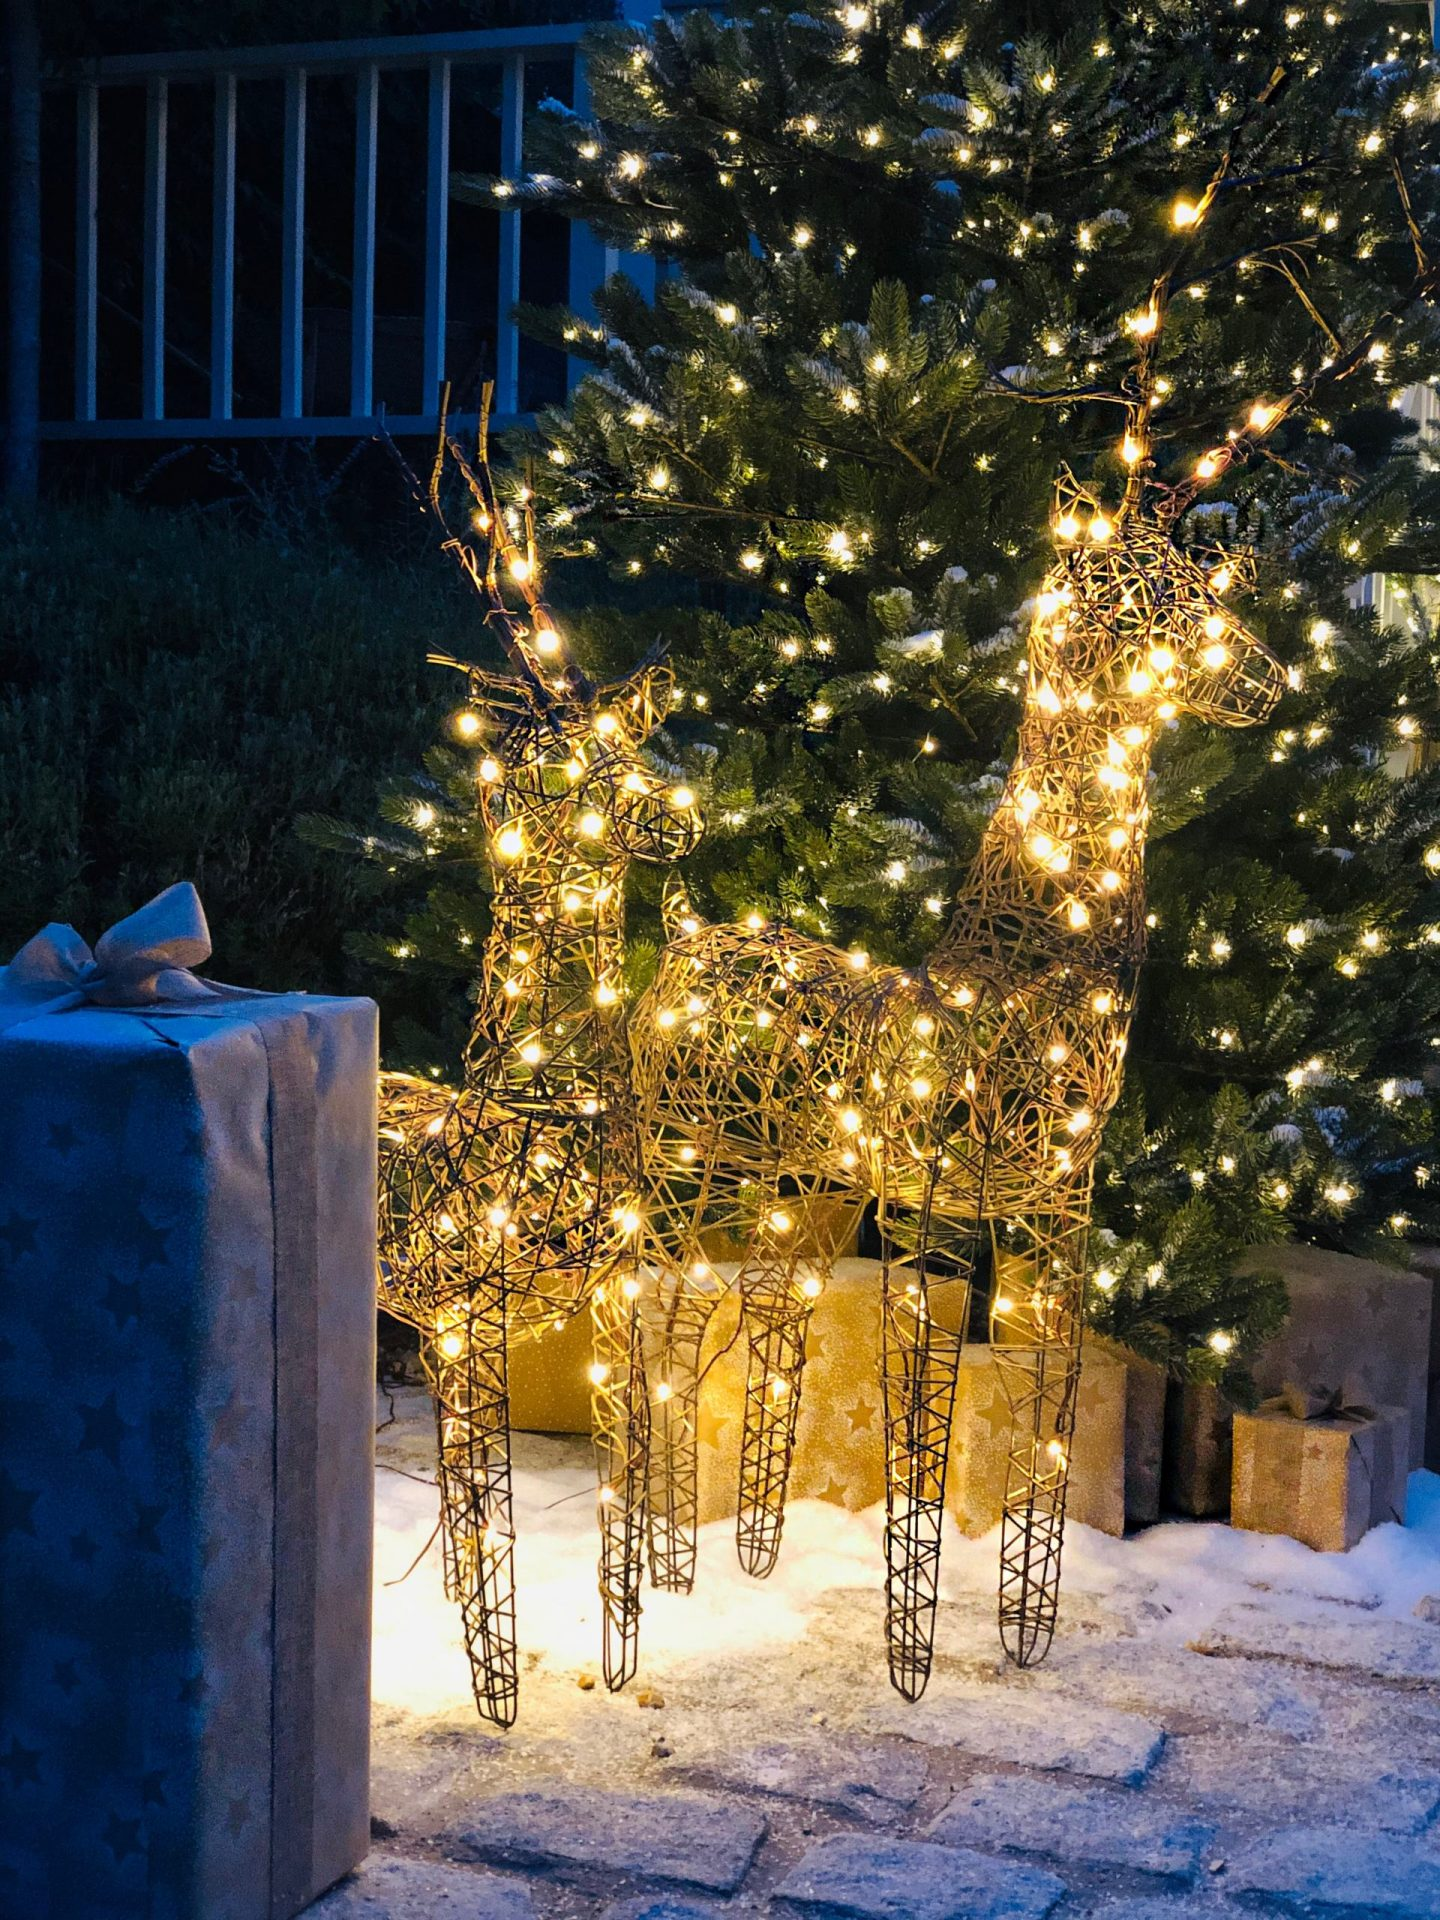 Light up reindeer by Cox & Cox